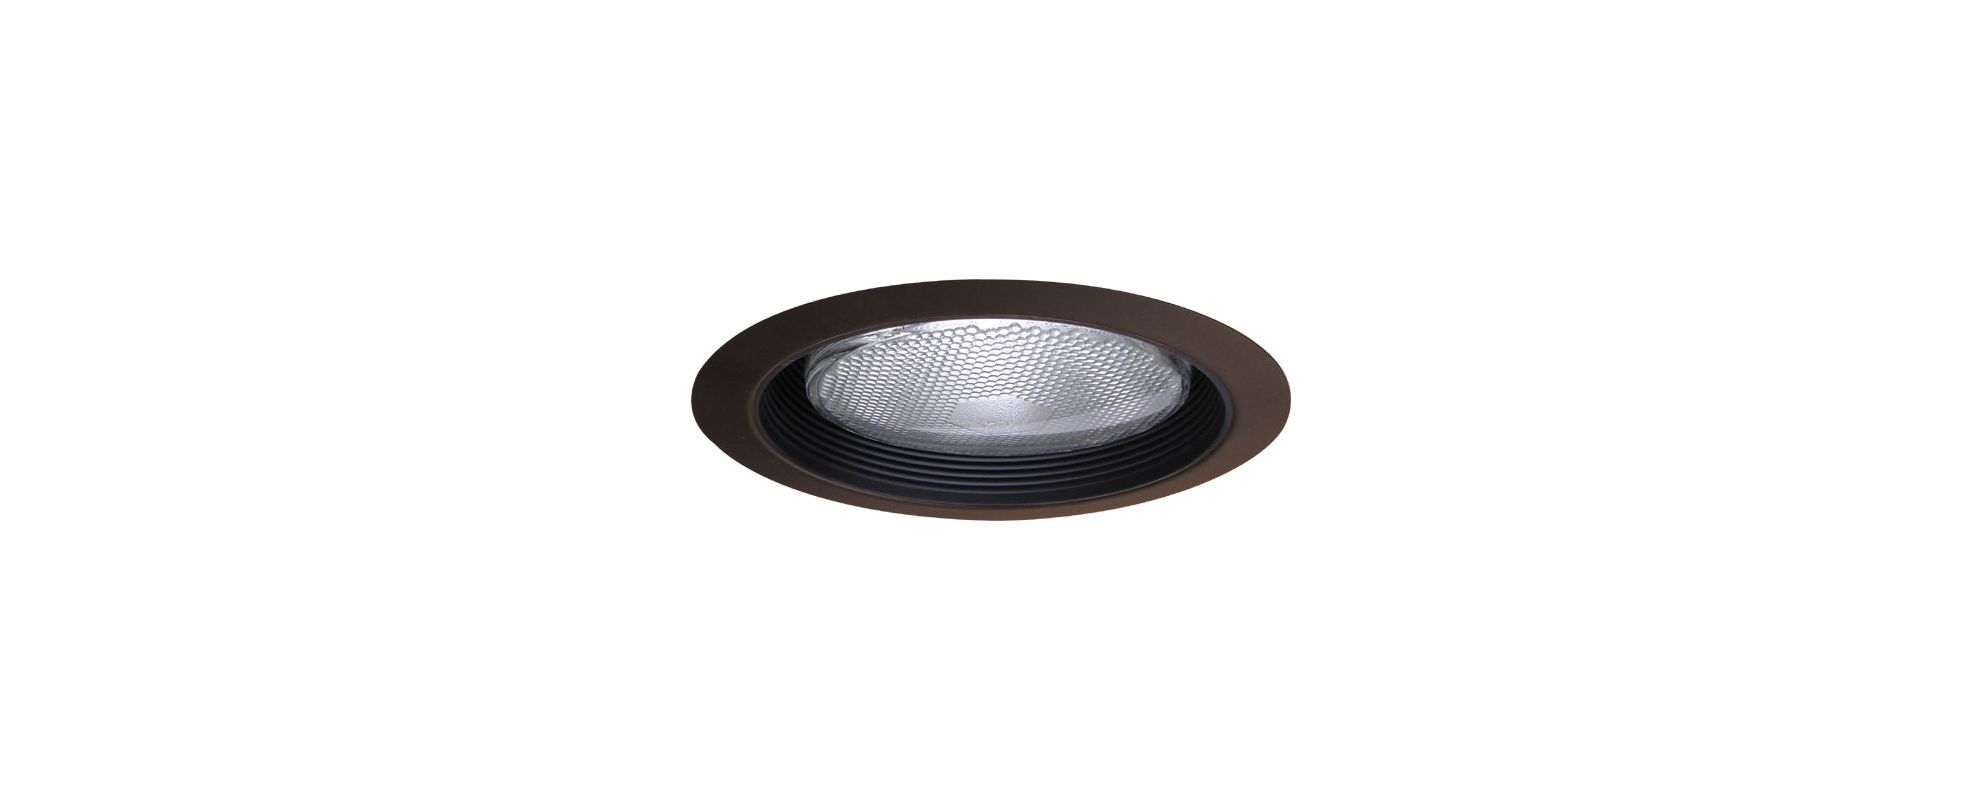 "Elco ELM40 6"" Recessed Lighting Trim - Metal Stepped Baffle Black /"